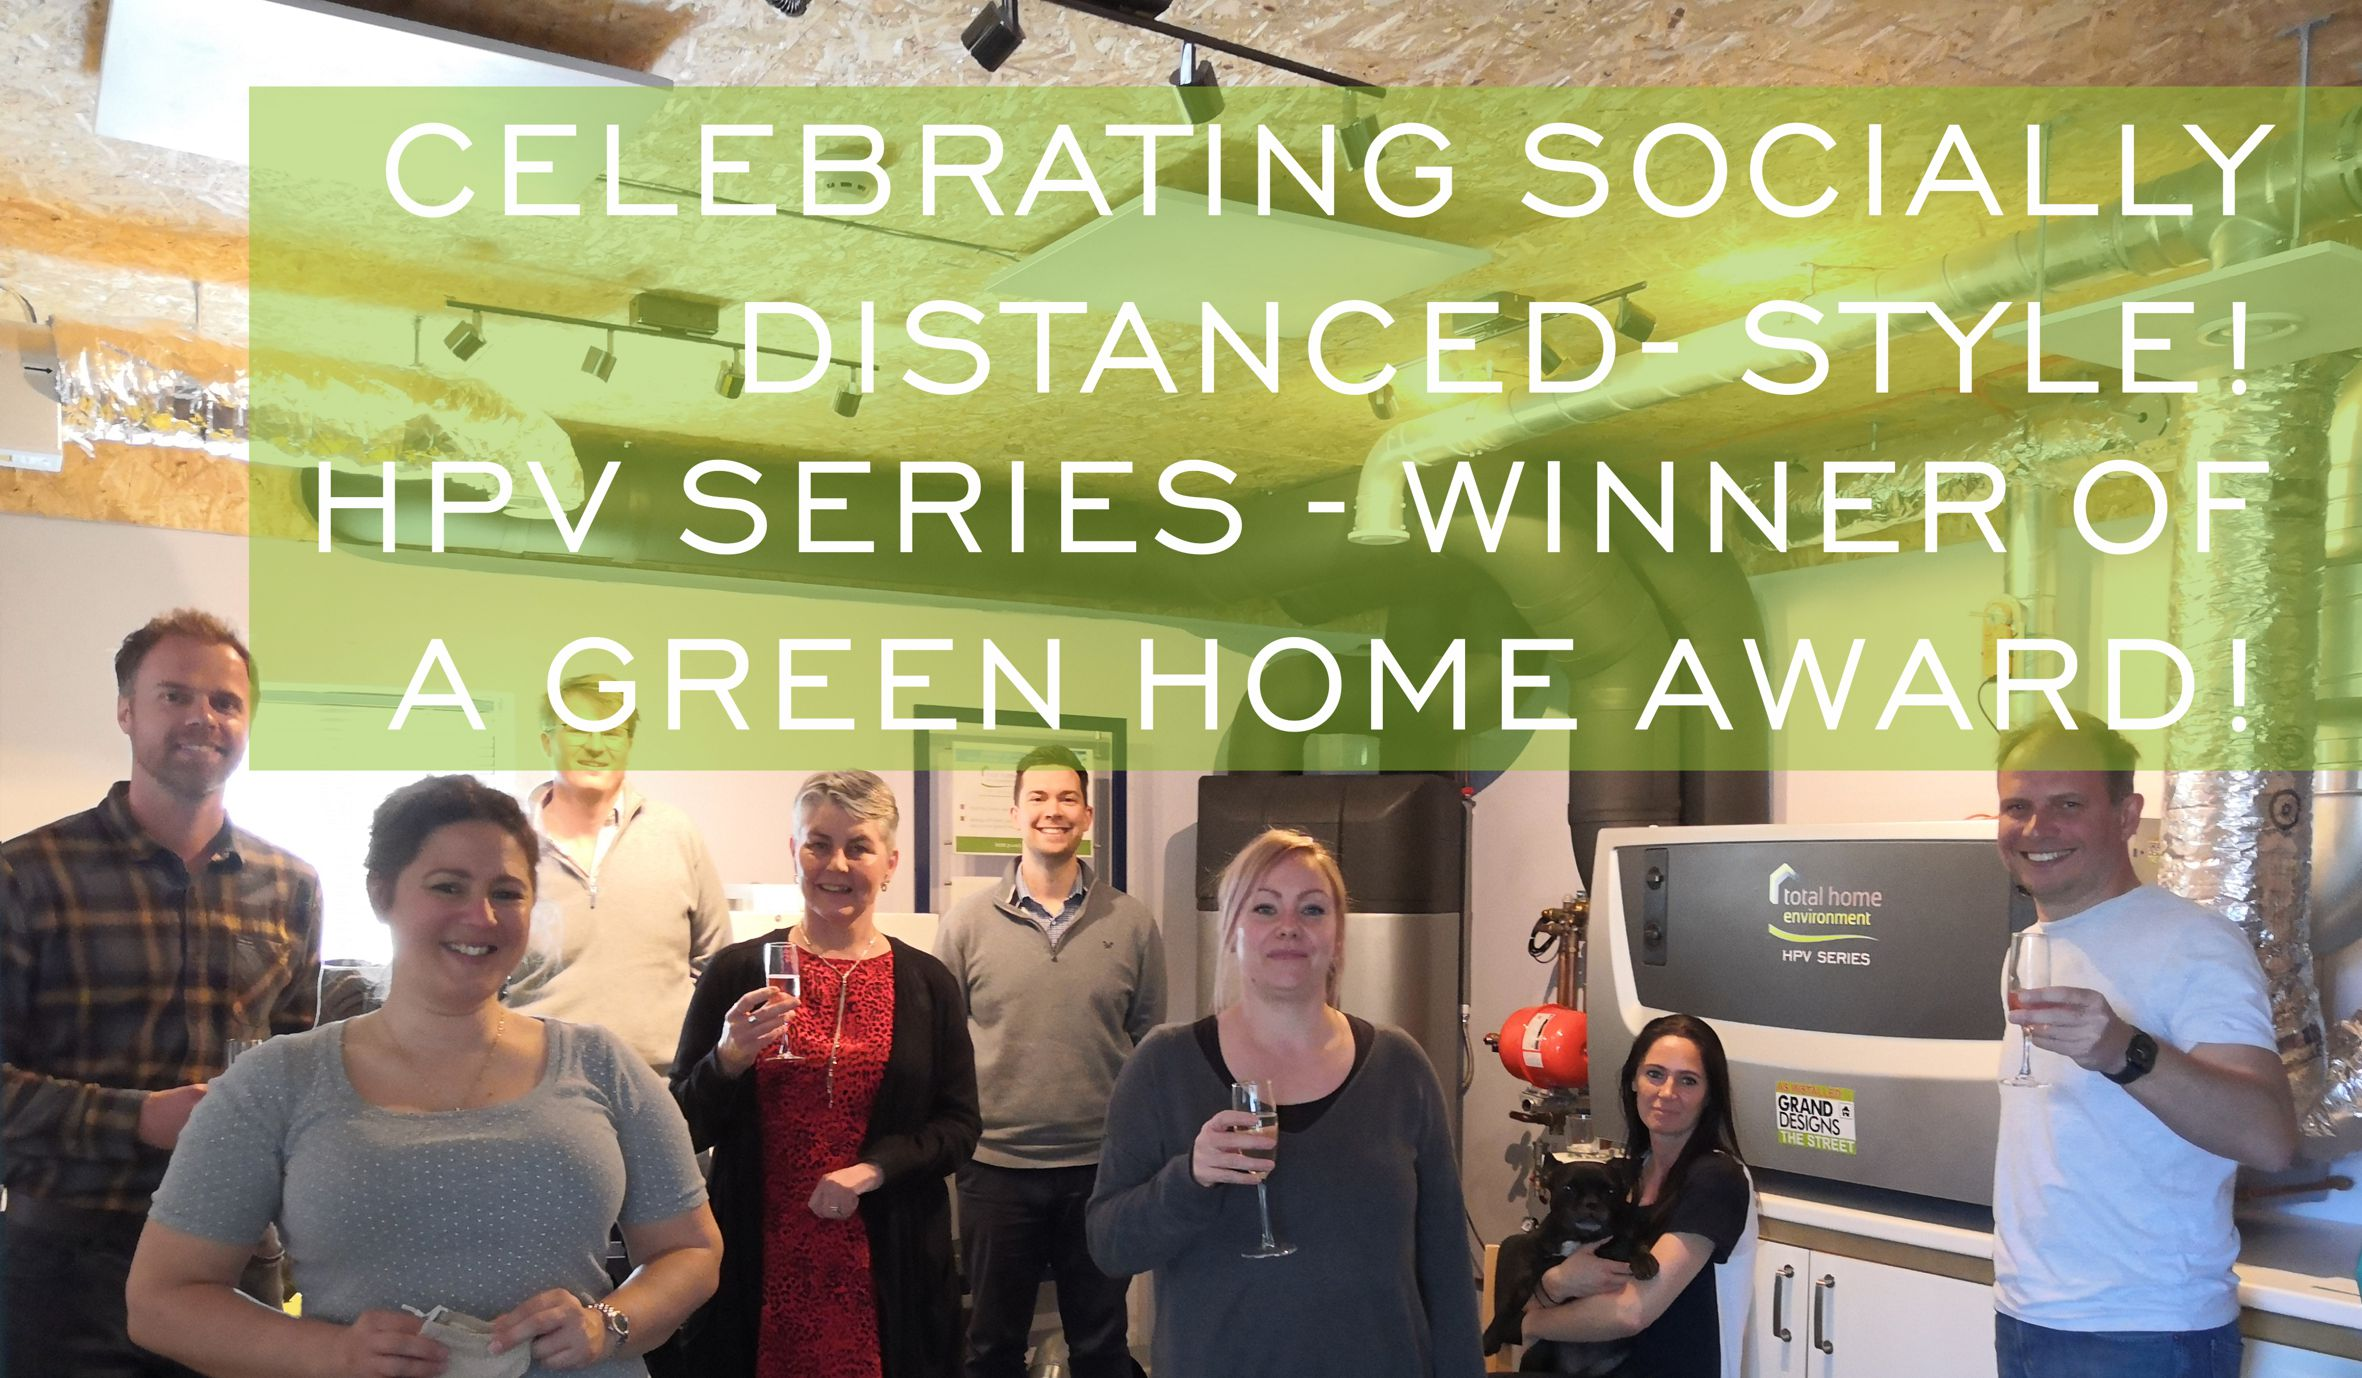 Celebrating the Green Home Awards Win